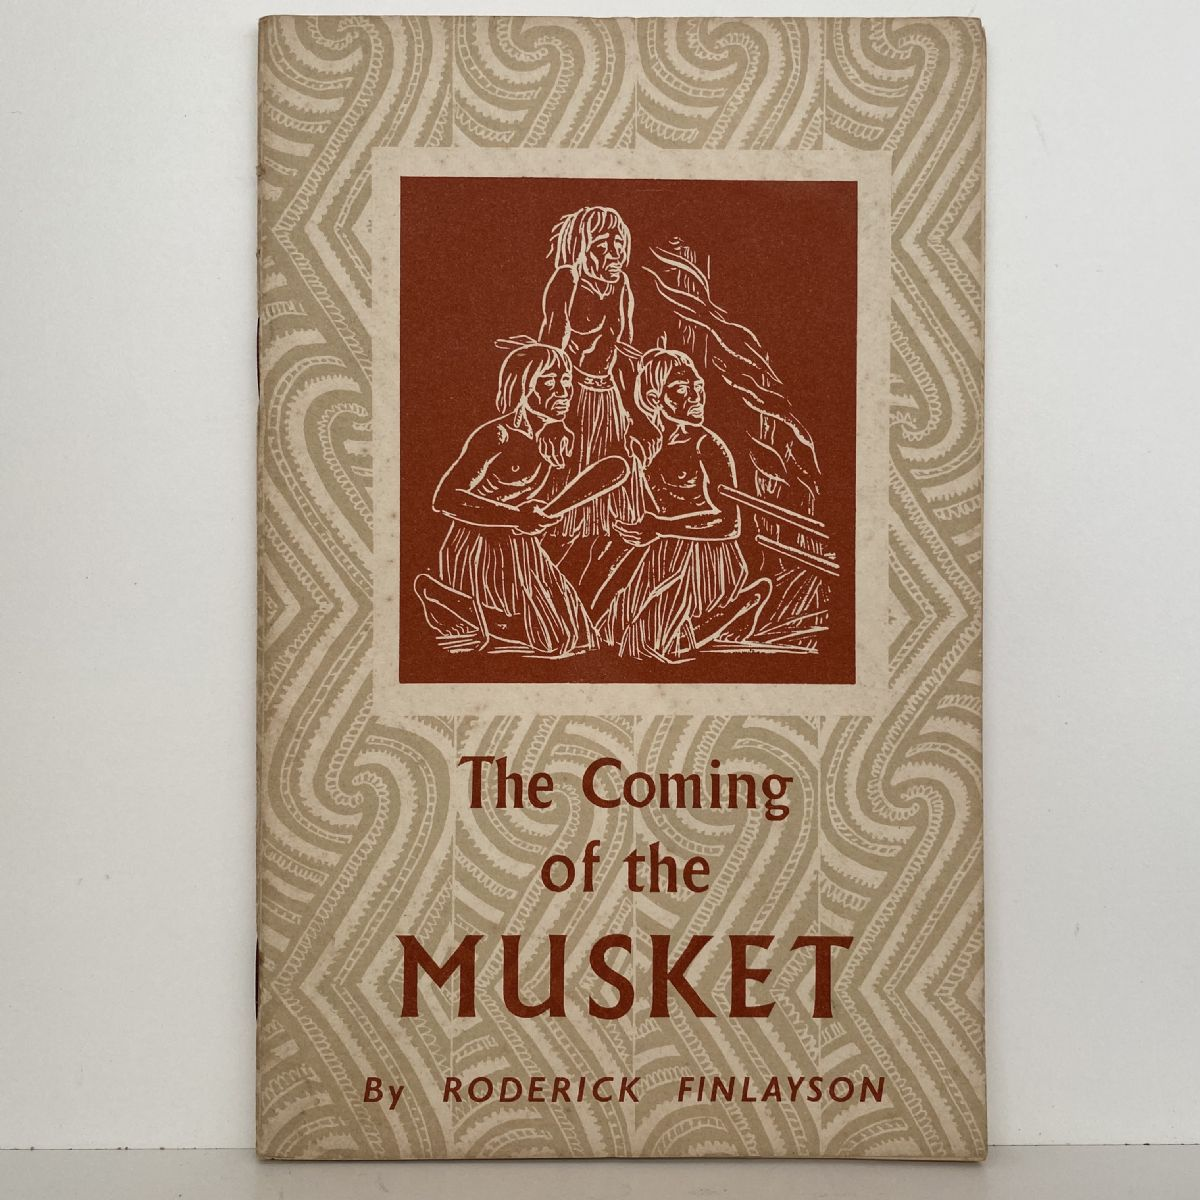 The Coming of the MUSKET